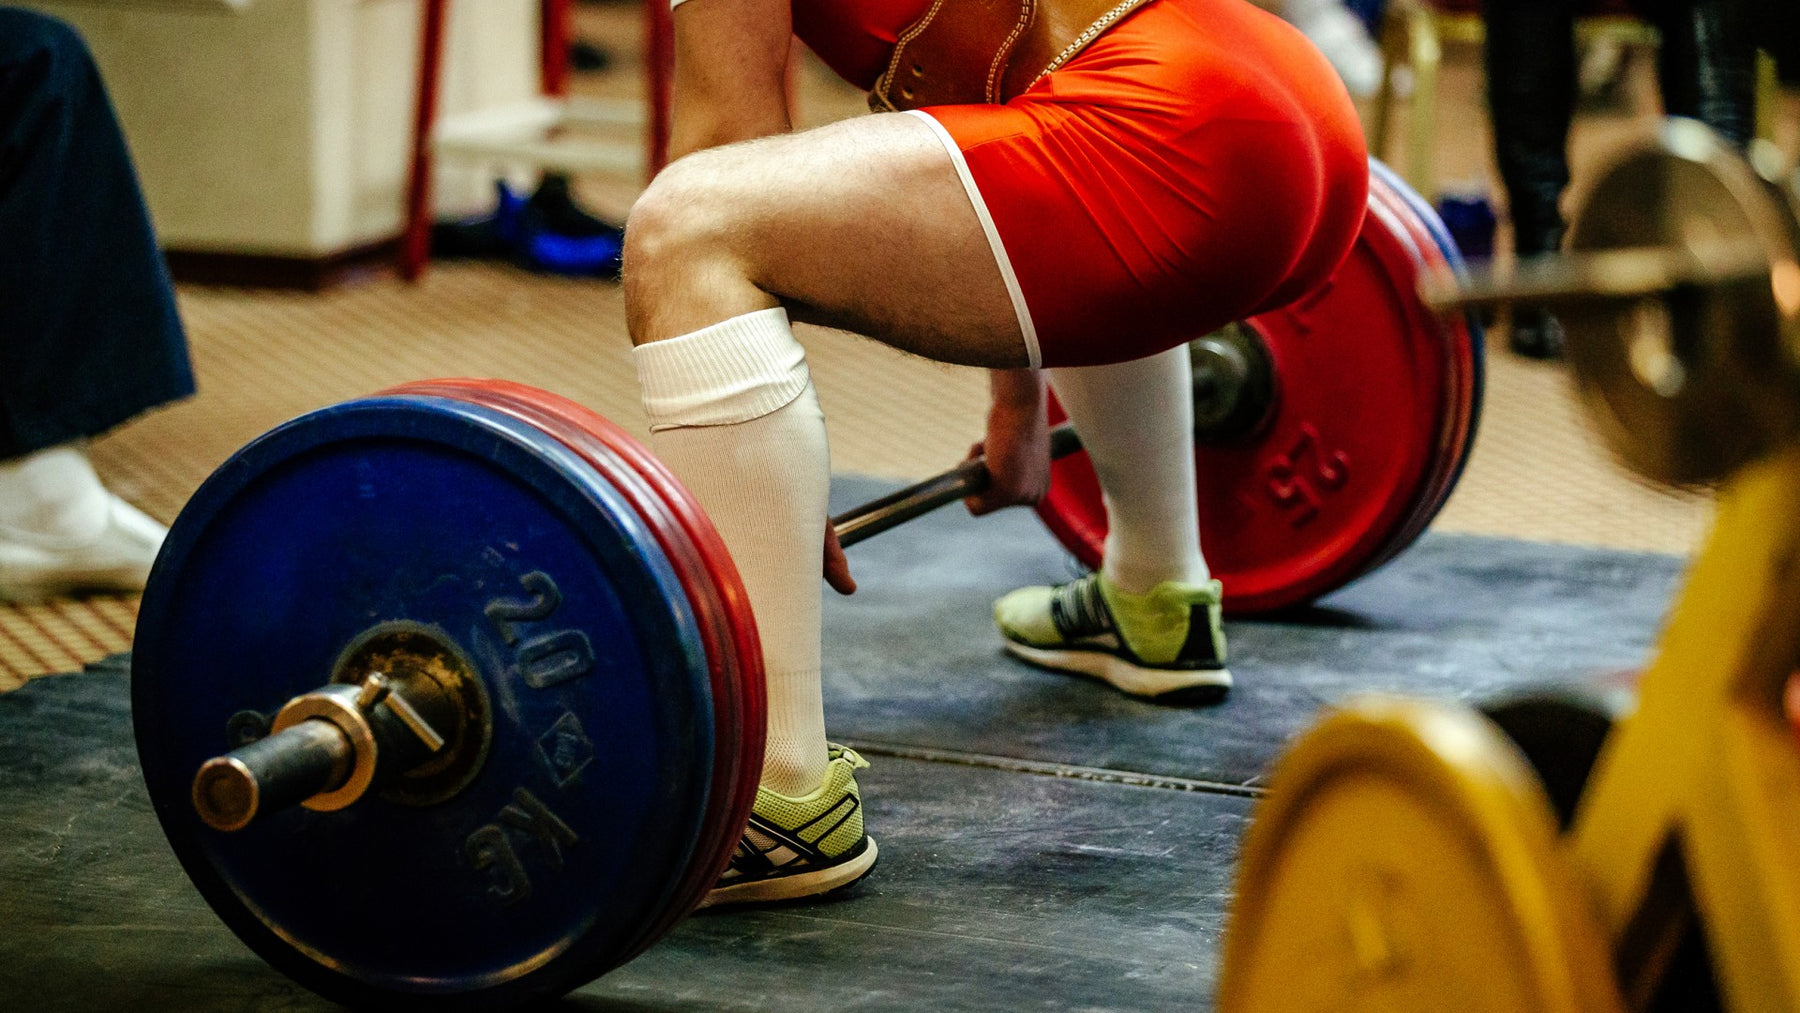 10 Reasons Why Powerlifting Routines Should Be More Popular